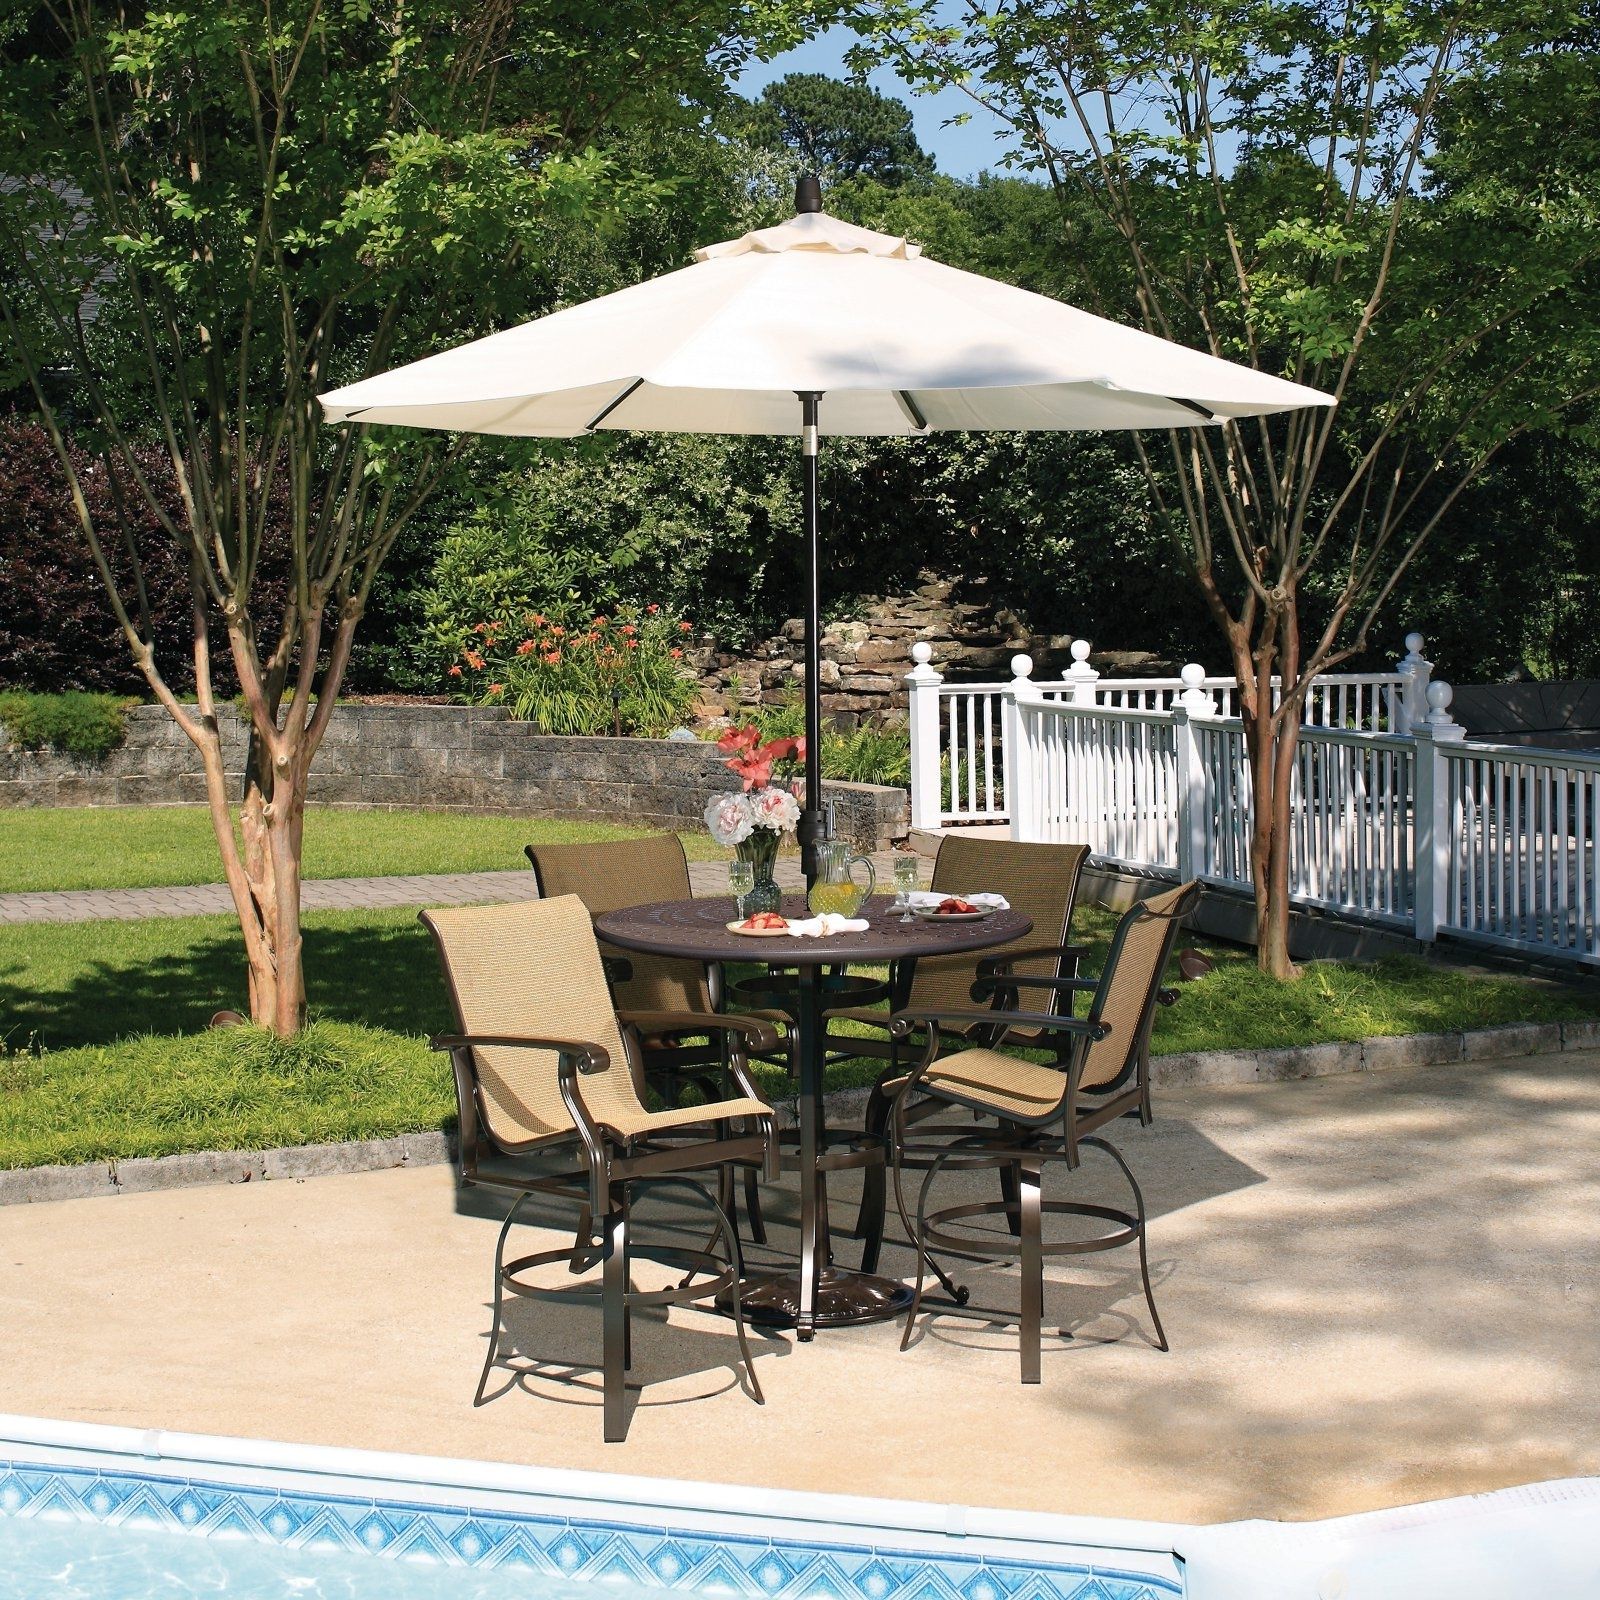 Fashionable Small Patio Tables With Umbrellas With Furniture: Nice Small Patio Table With Umbrella Hole For Stunning (View 5 of 20)